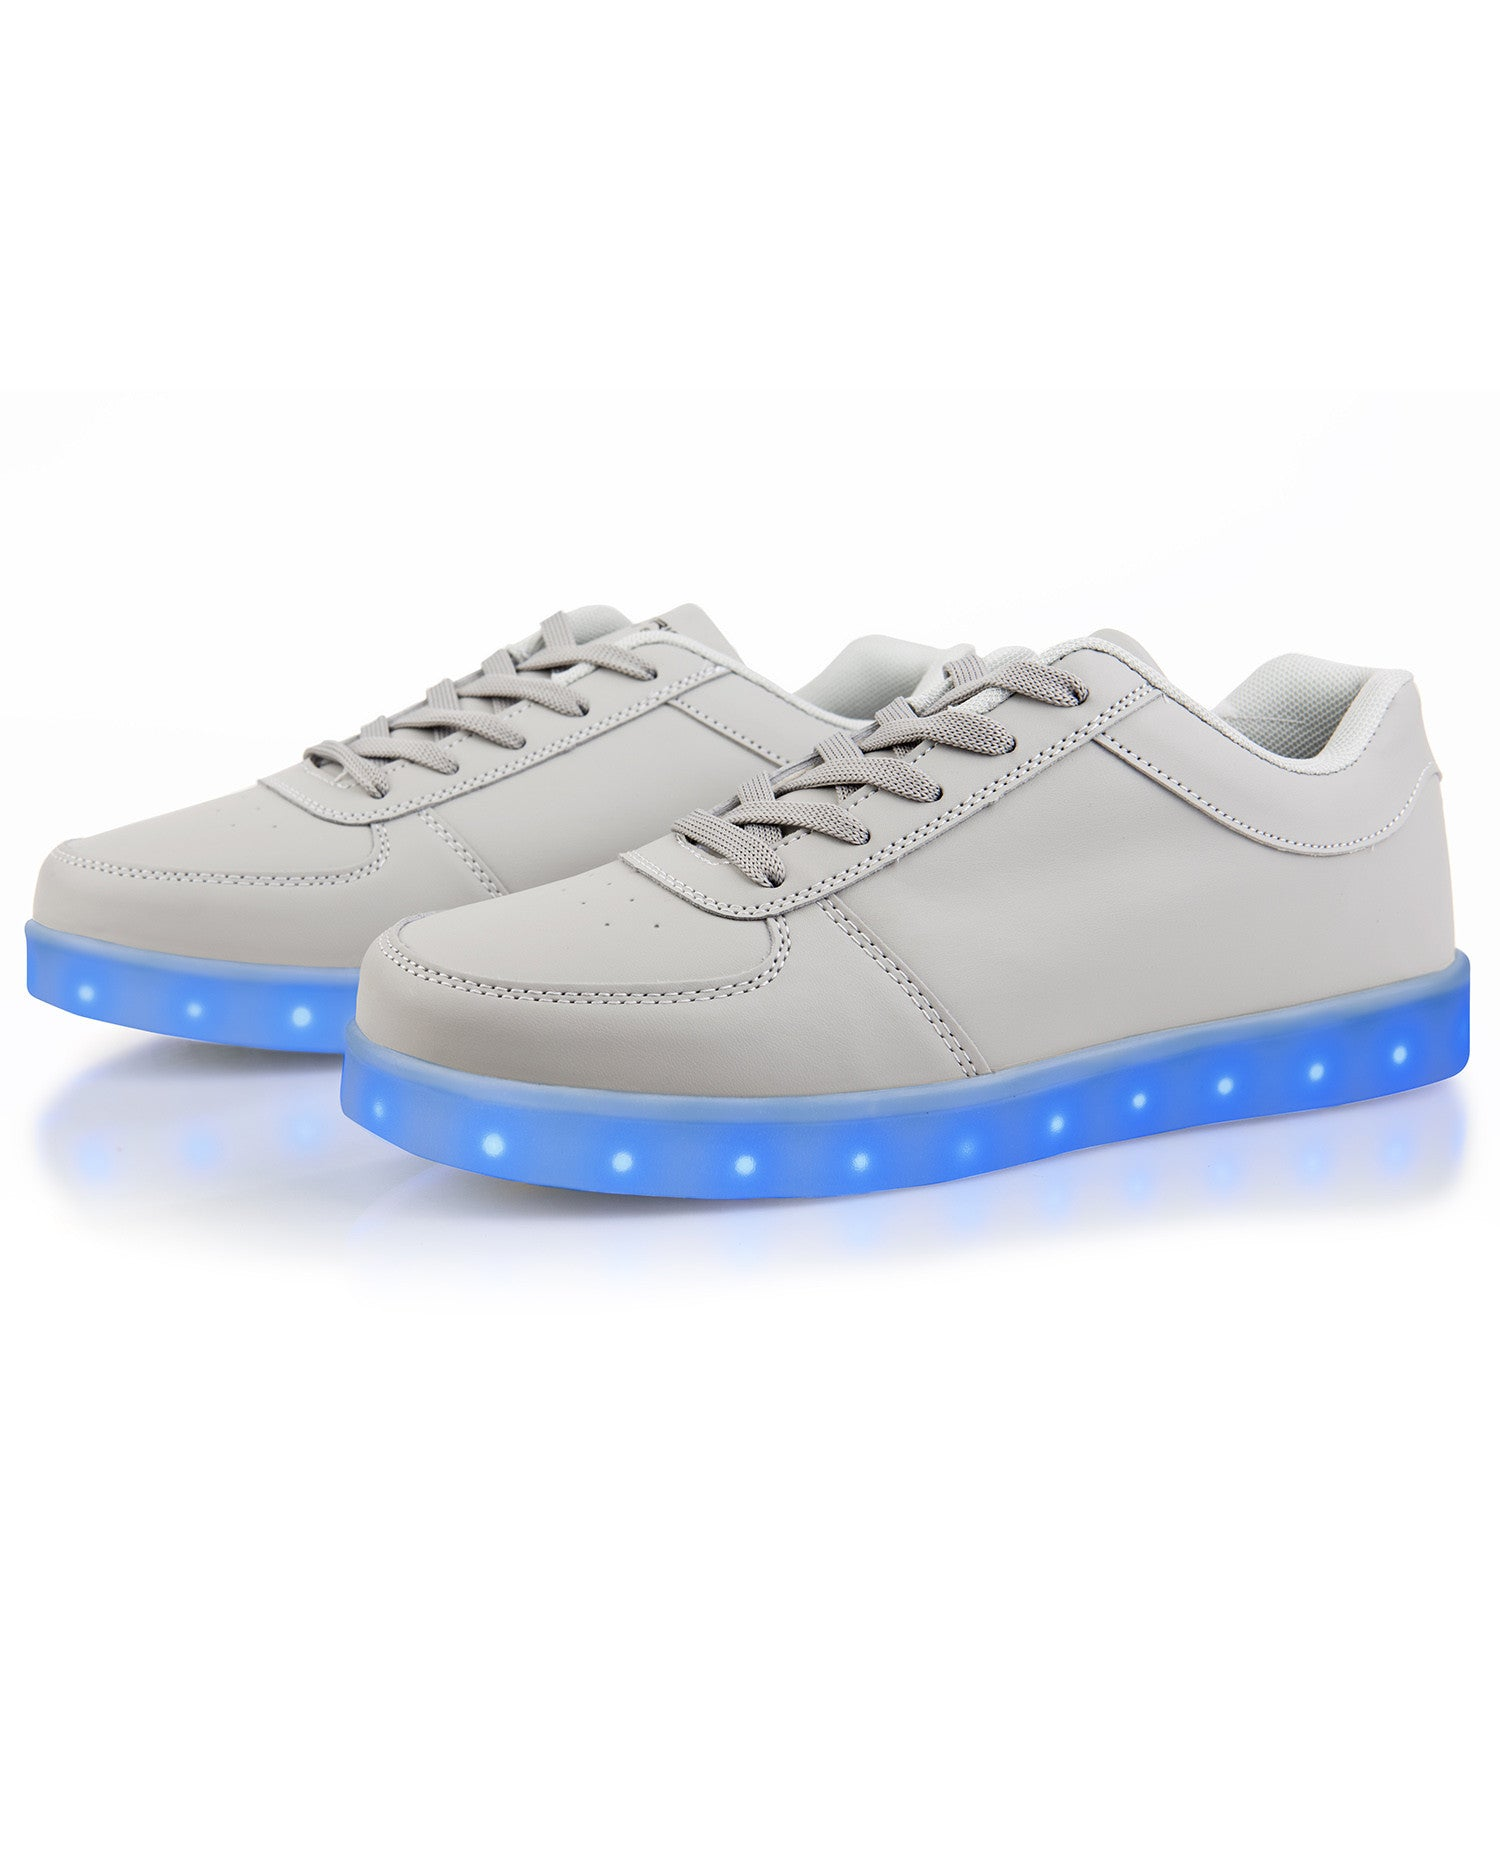 Electric Shoes - The Original - Electric Styles | World's Number 1 Light Up Shoe Store - {product_type}} -  - 17